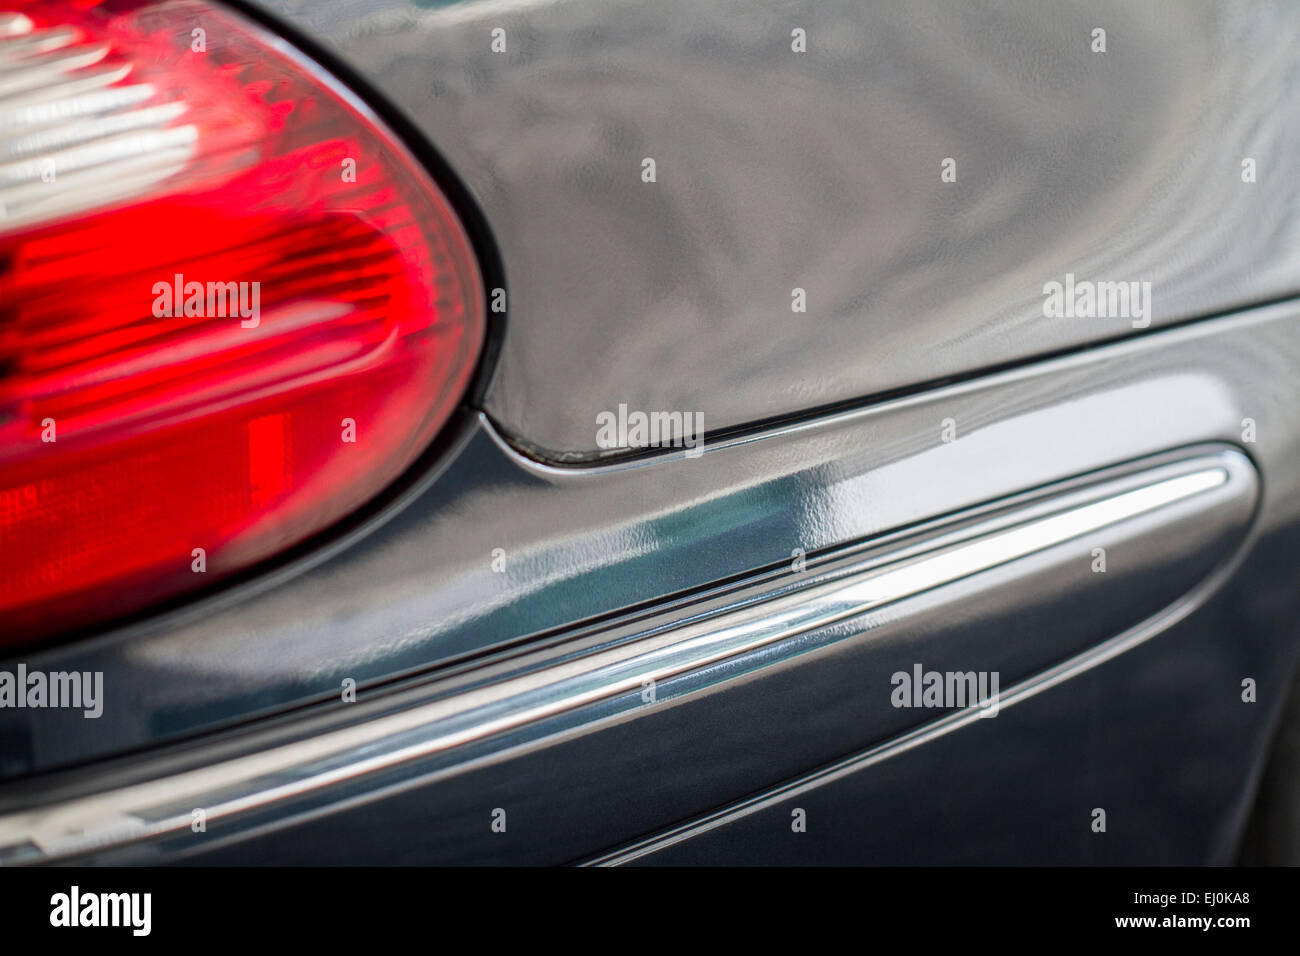 Close up detail of the rear end of a automobile. - Stock Image